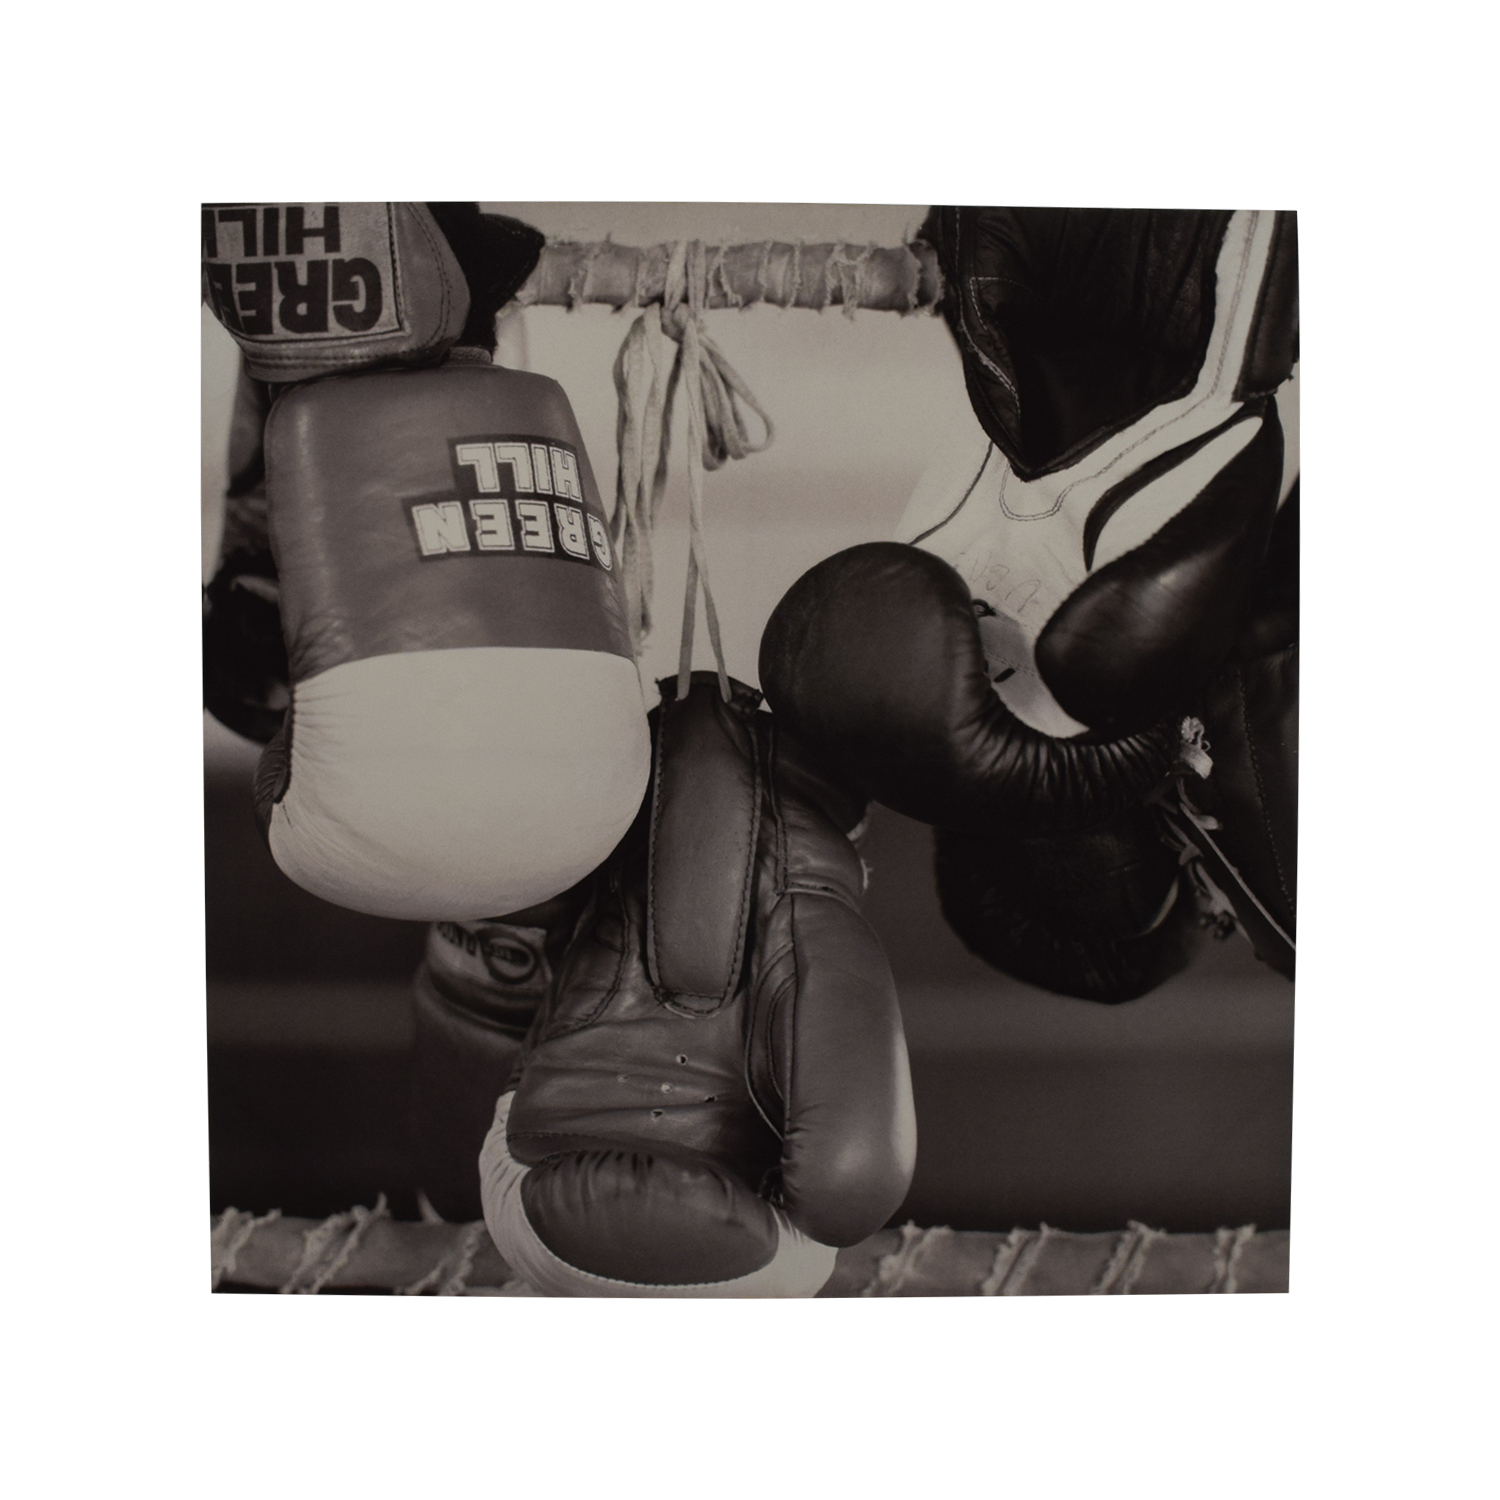 Black & White Boxing Painting on sale